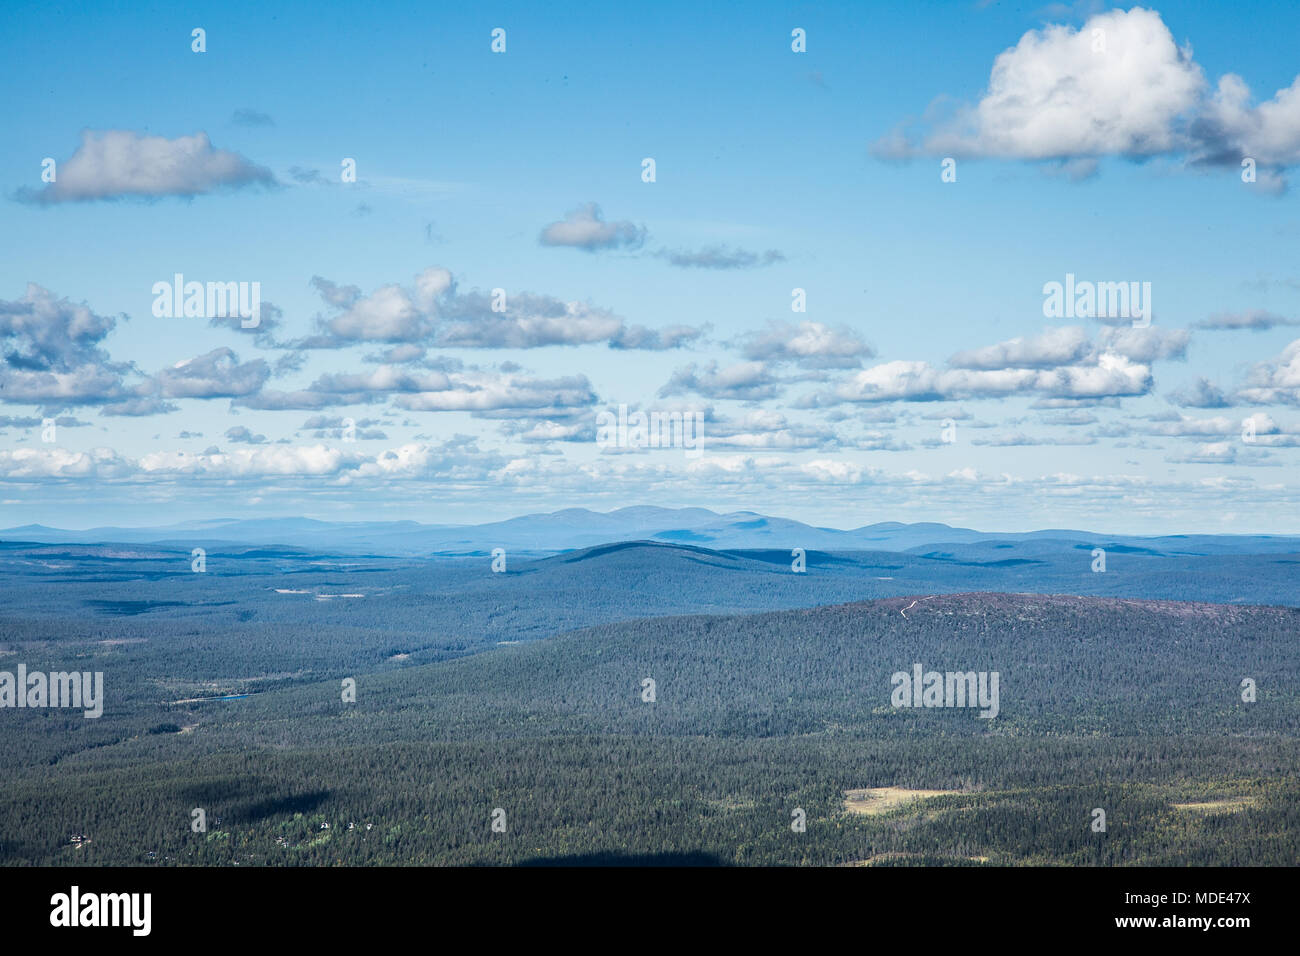 Landscape photo of a Finnish rural forest taken on top of Ylläs fell in Lapland - Stock Image